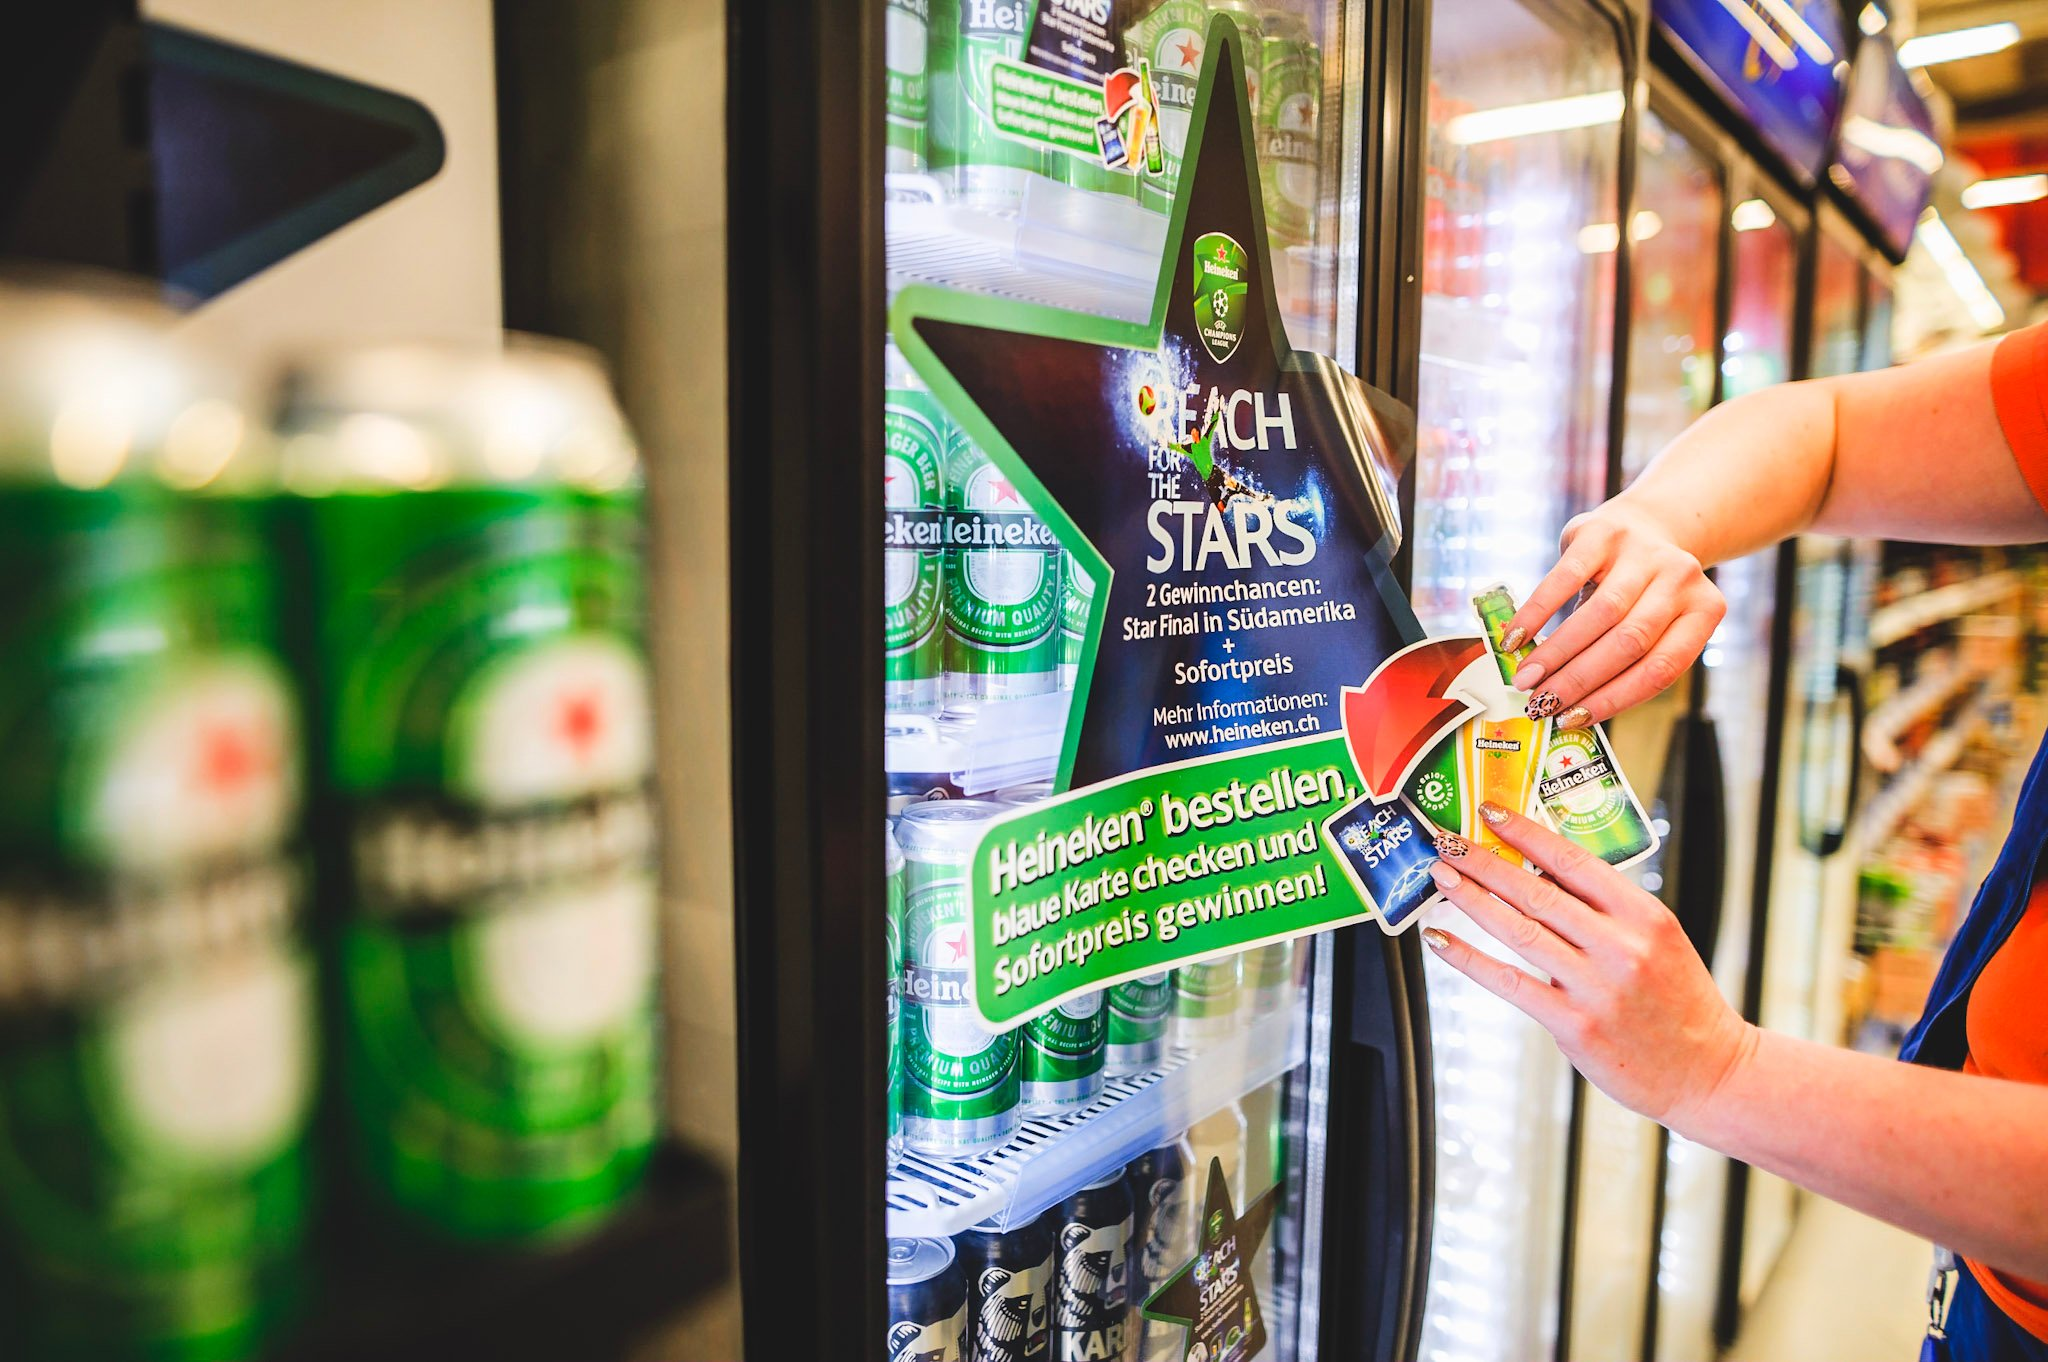 Promoting brewery products in stores - how is it done?